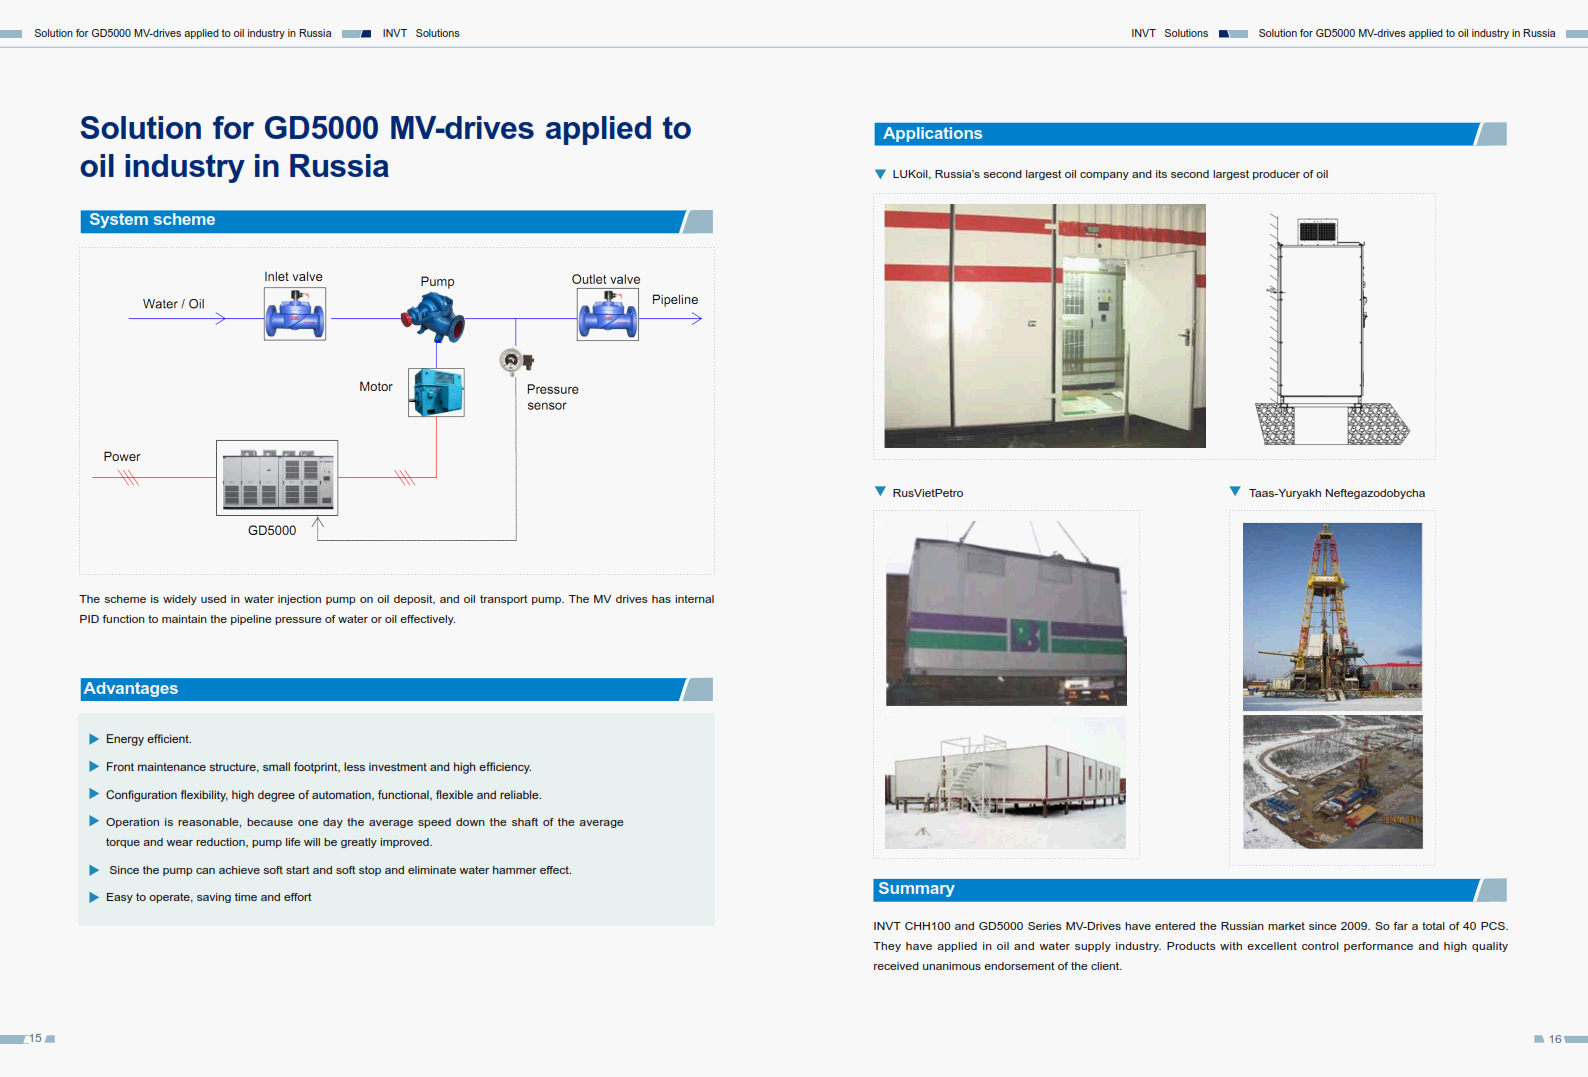 Solution for GD5000 MV-drives applied to oil industry in Russia